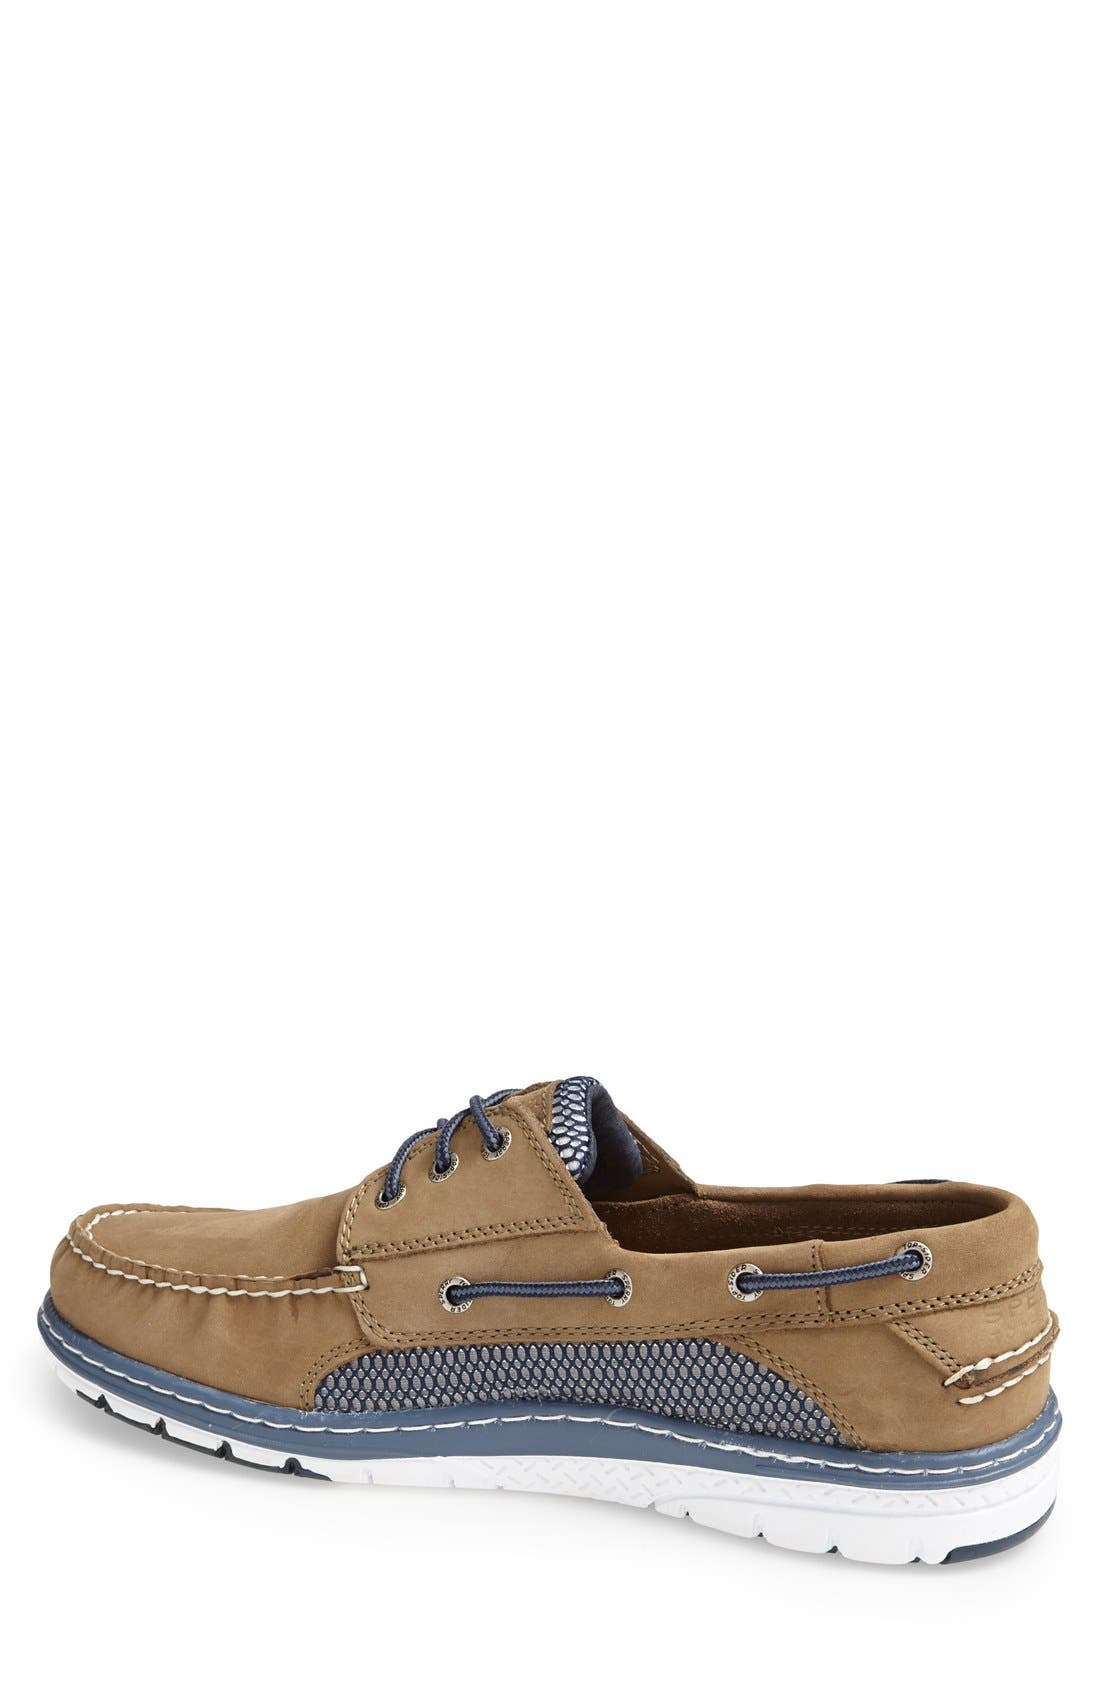 'Billfish Ultralite' Boat Shoe,                             Alternate thumbnail 35, color,